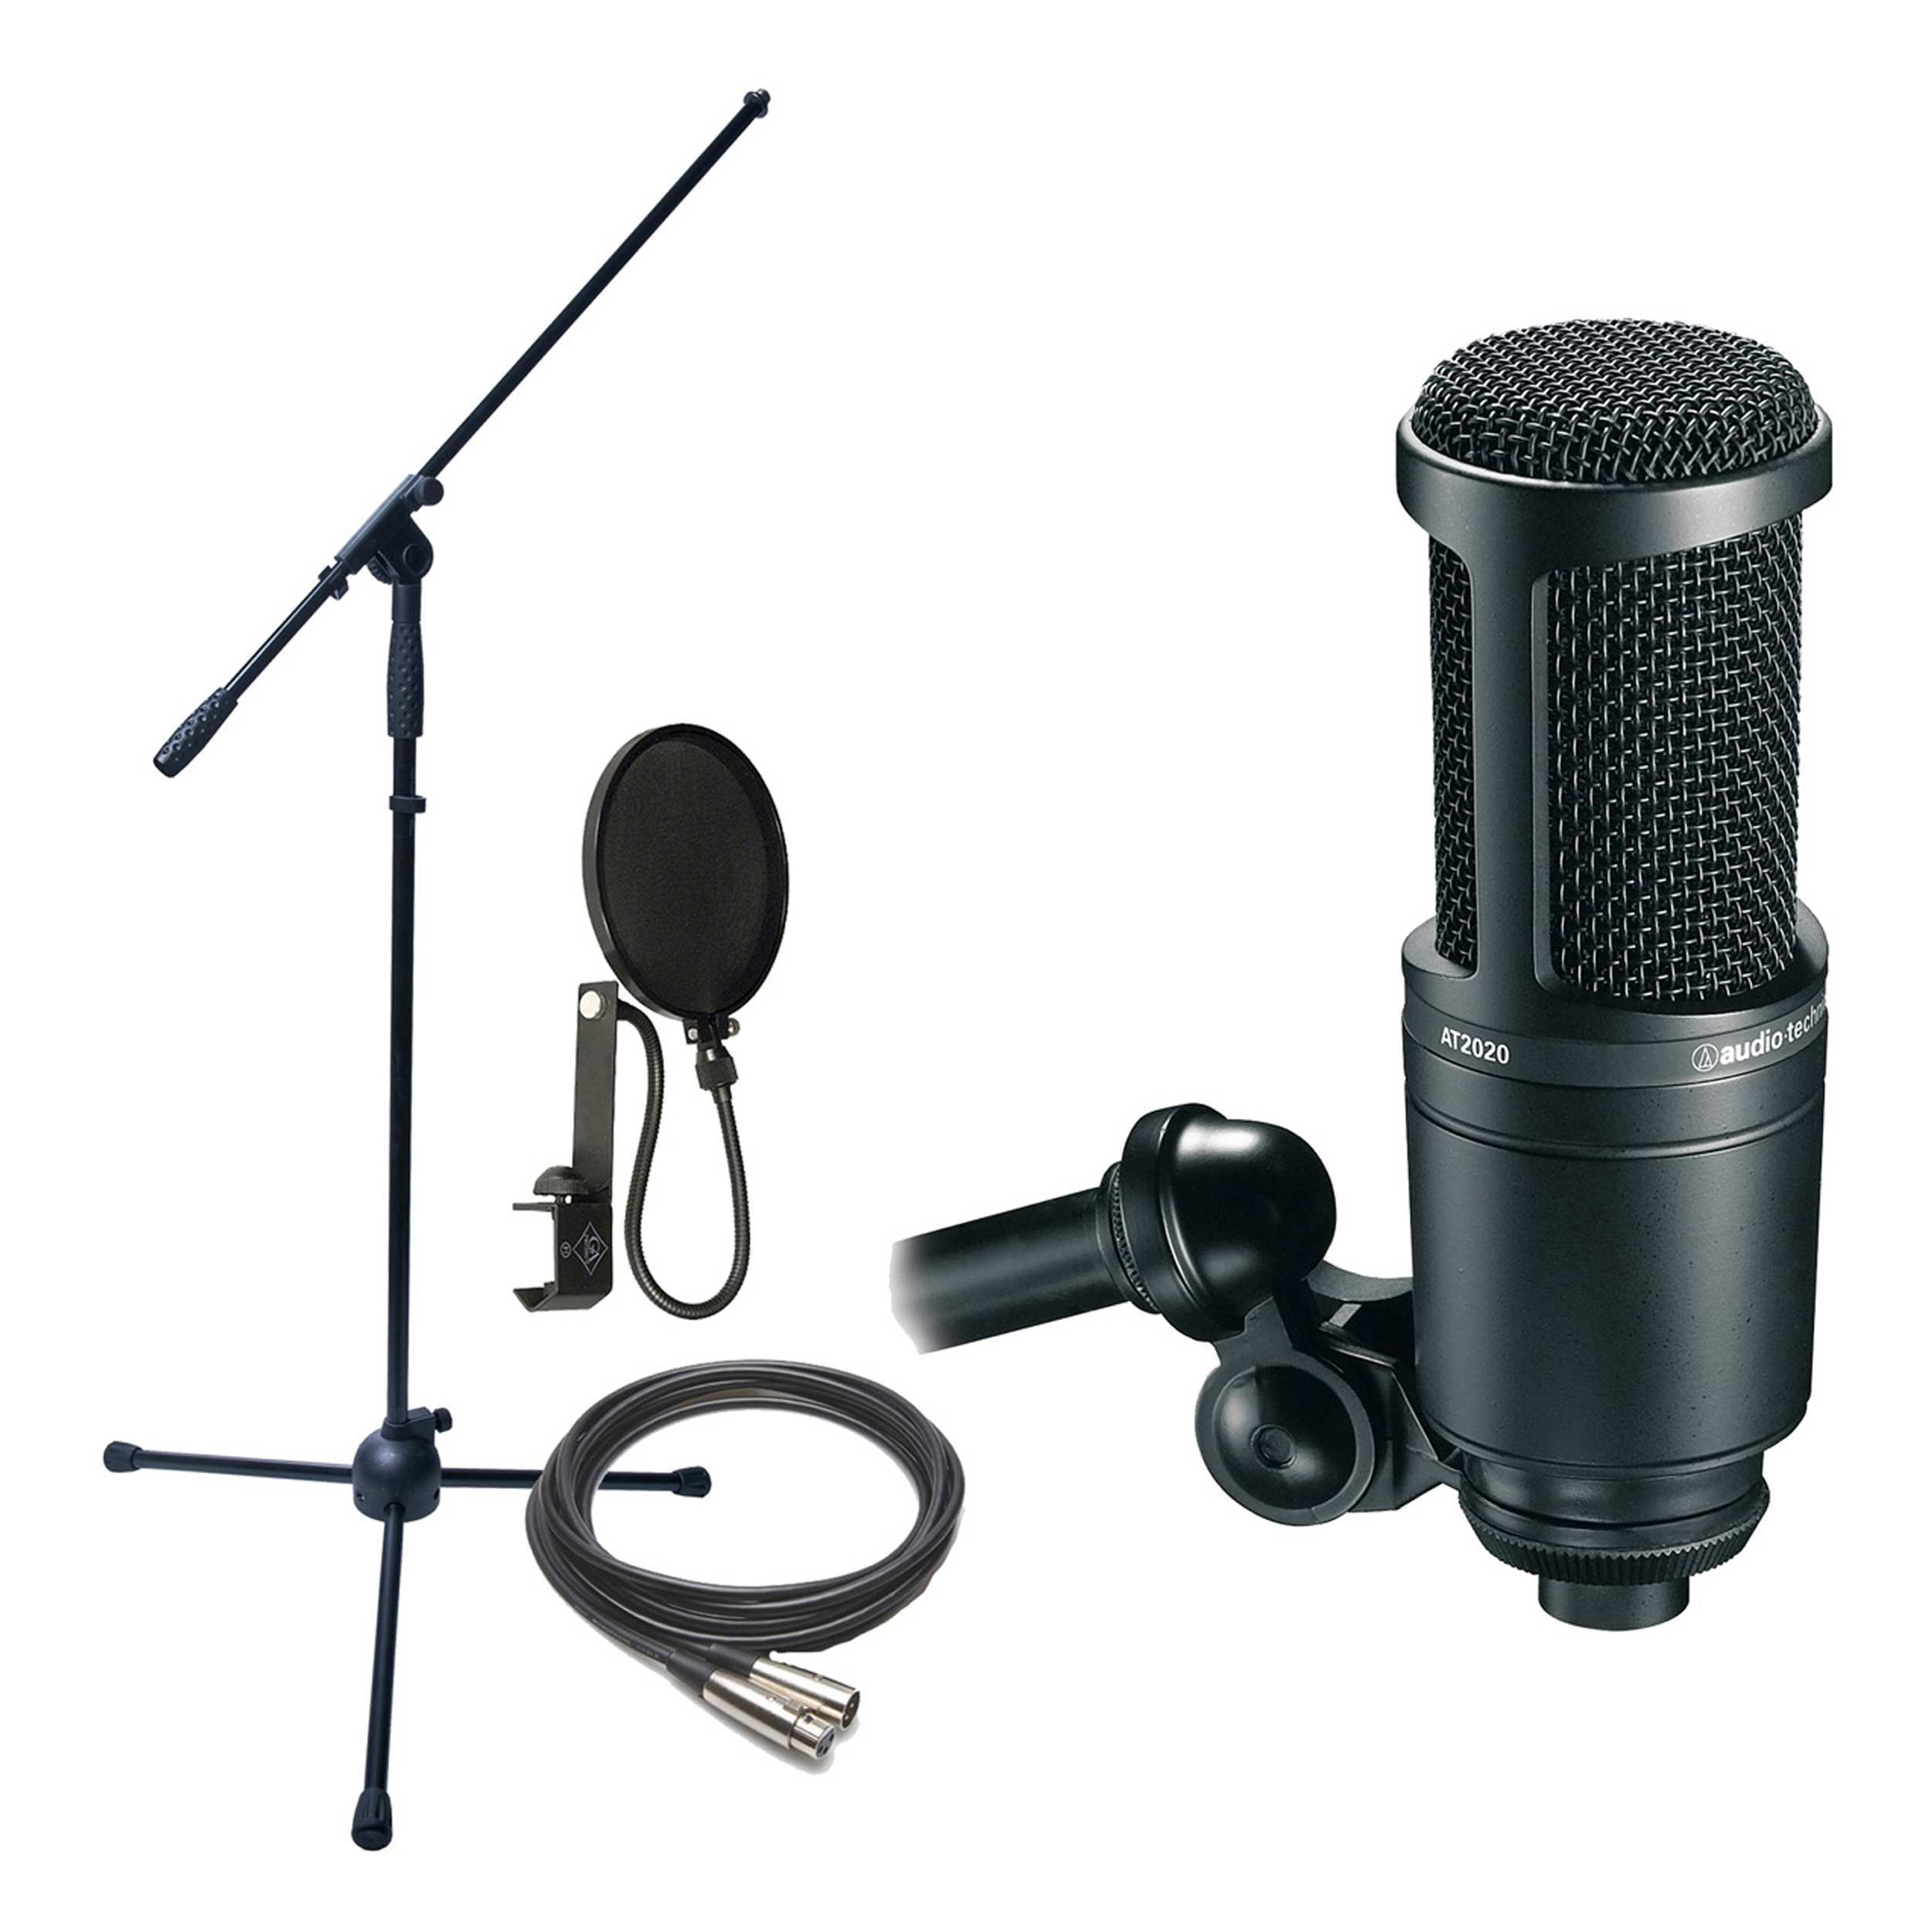 83 The Audio Technica At2020 Price And Release Date